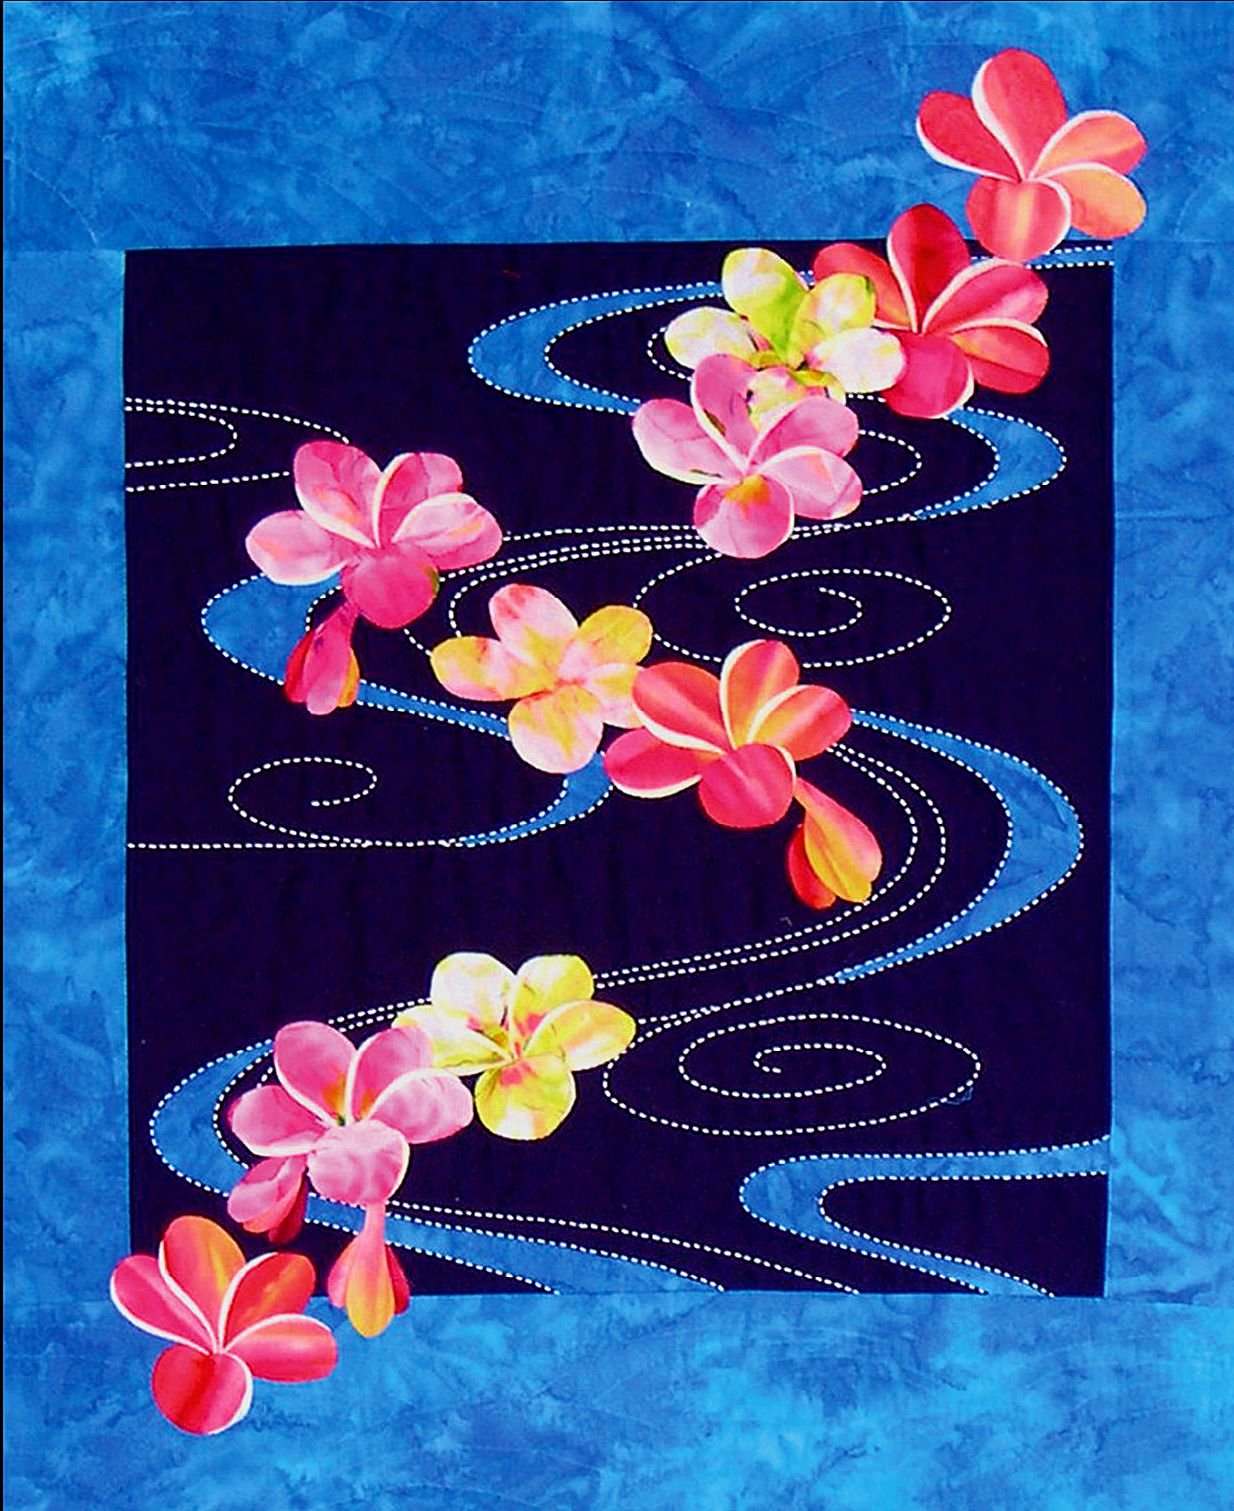 Plumeria Floating on Water Pre-printed Sashiko & Applique Fabric Kit